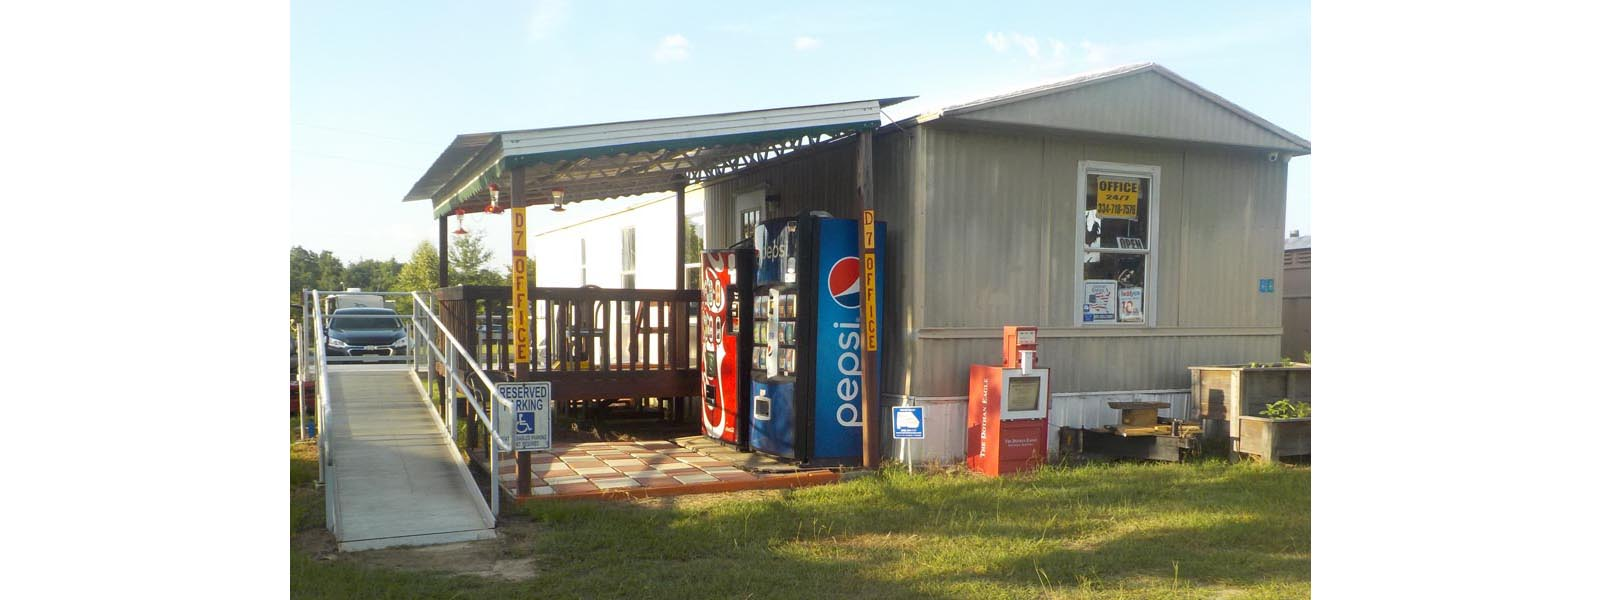 A-Okay campground main office